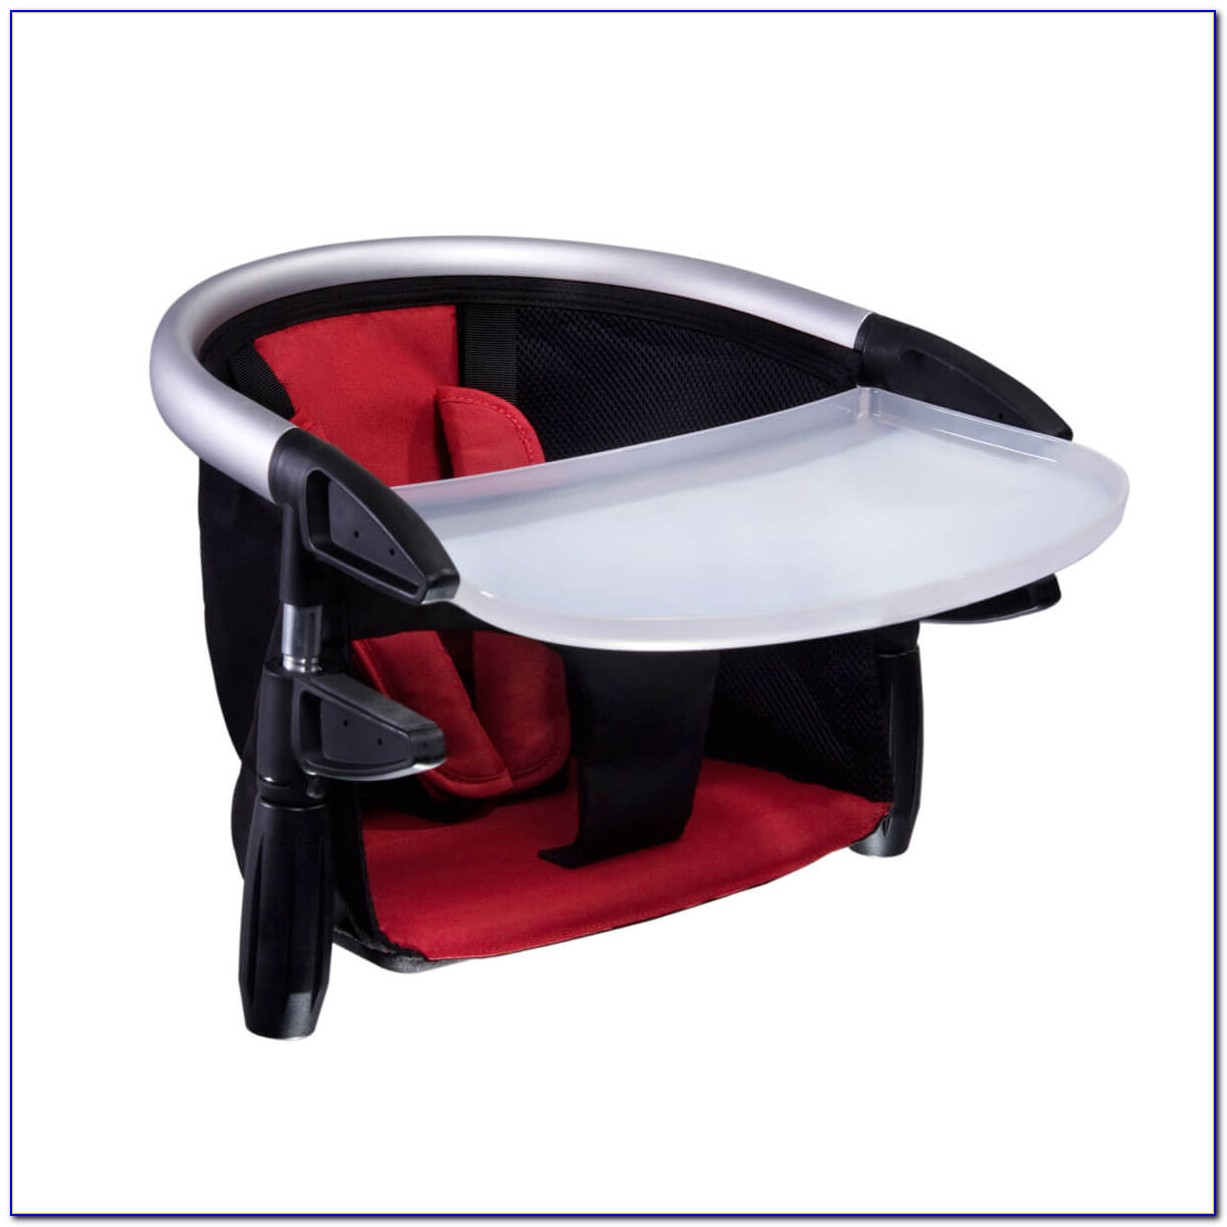 Portable High Chair Seat Nz